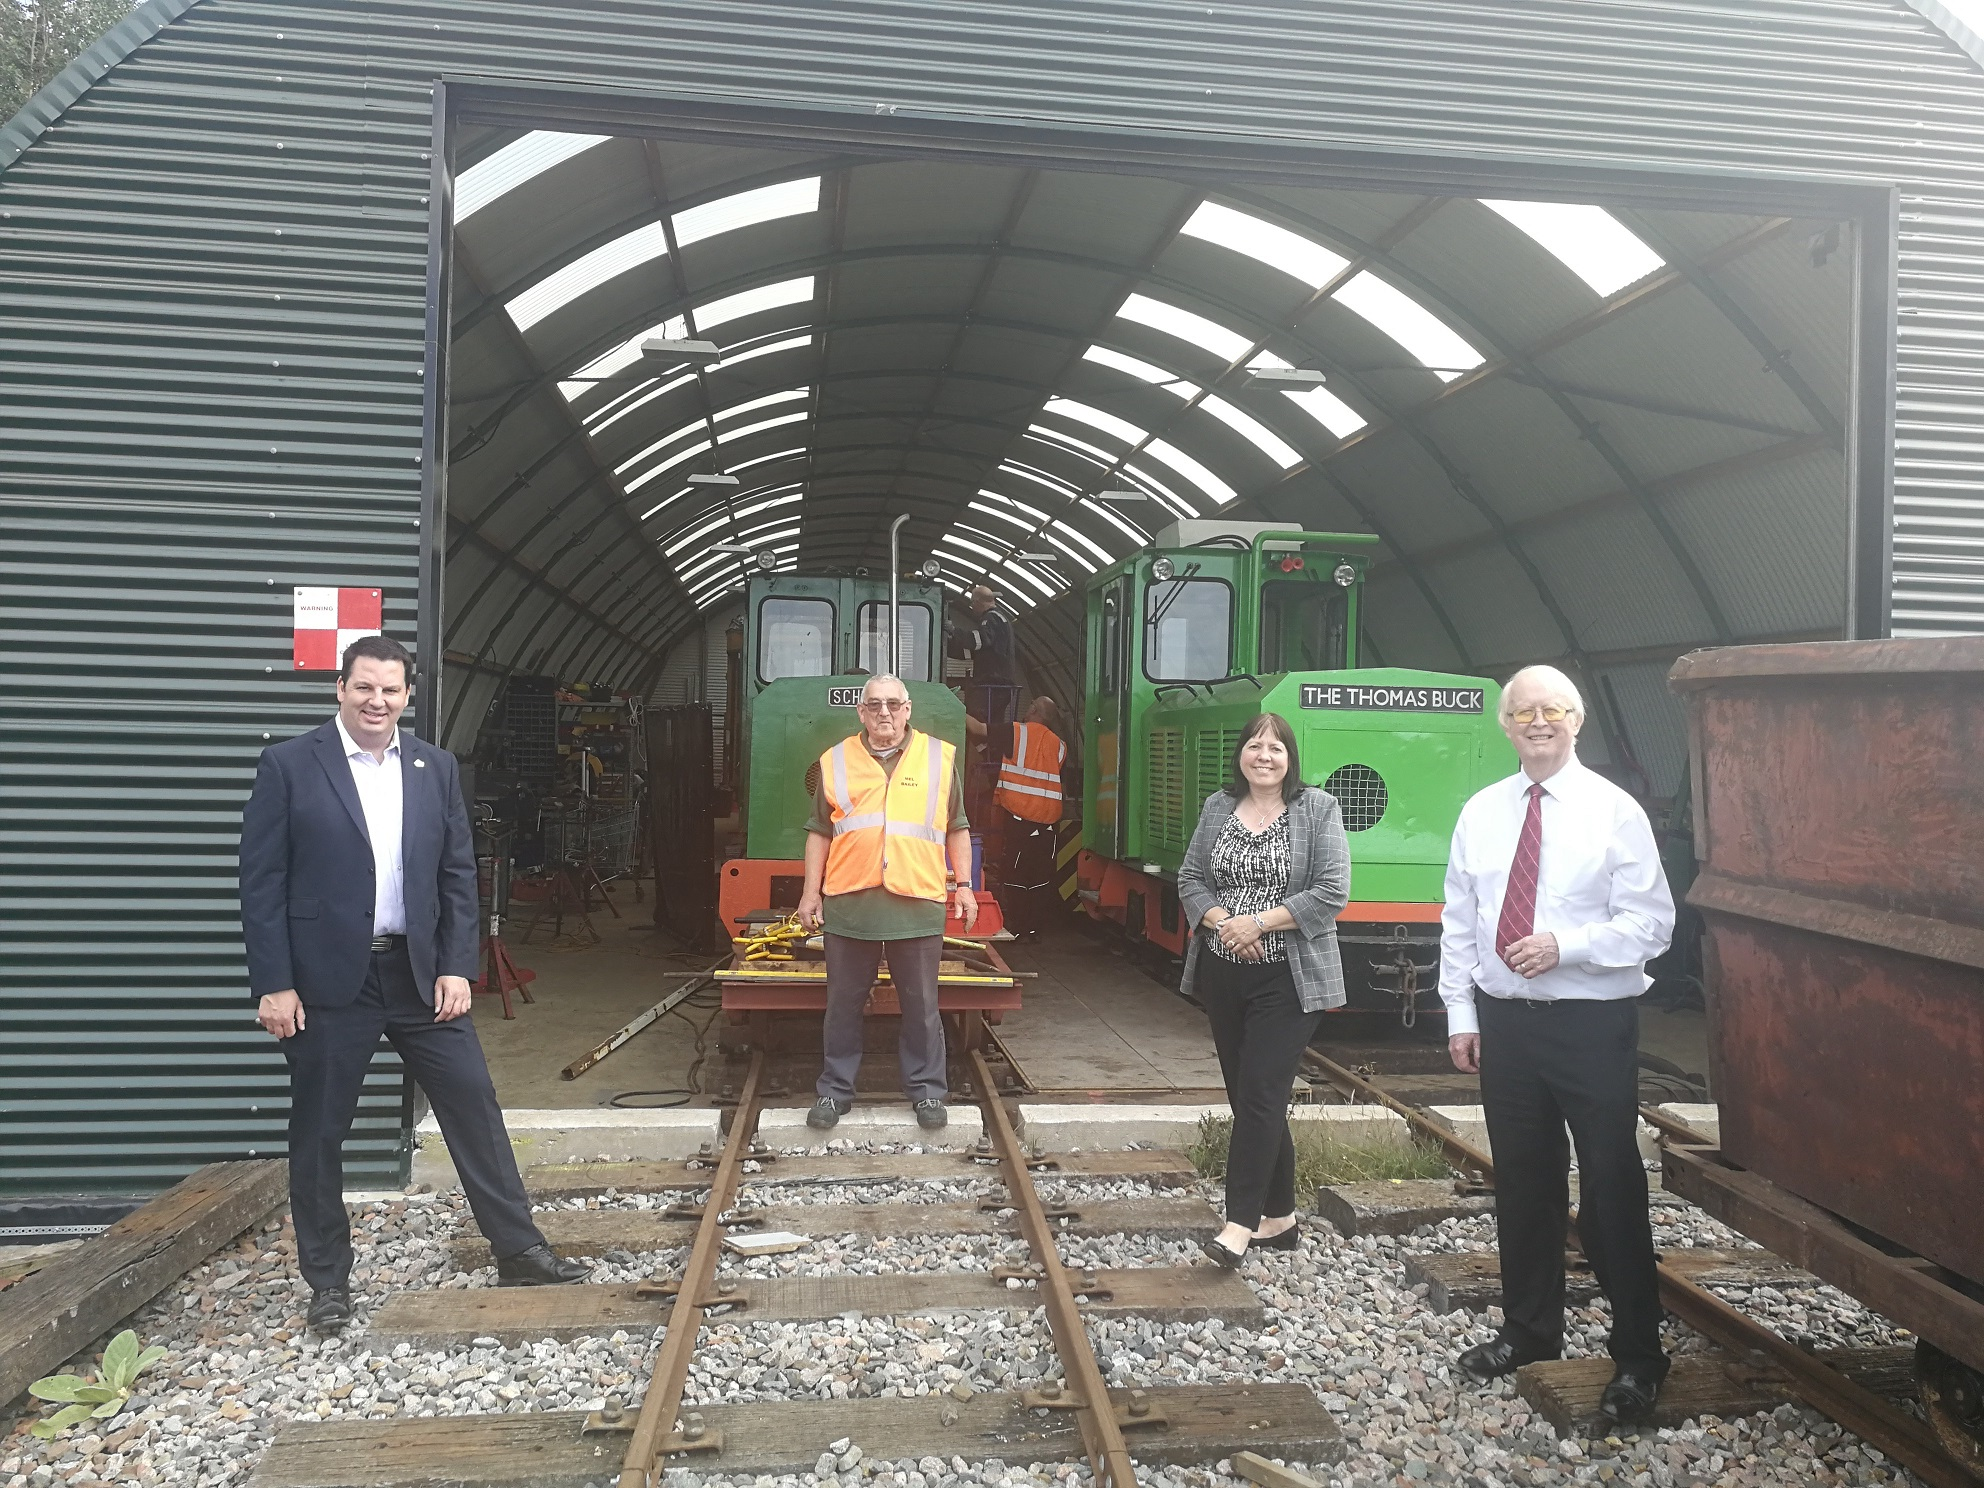 Crowle Peatland Railway - Funding Secured for New Tram